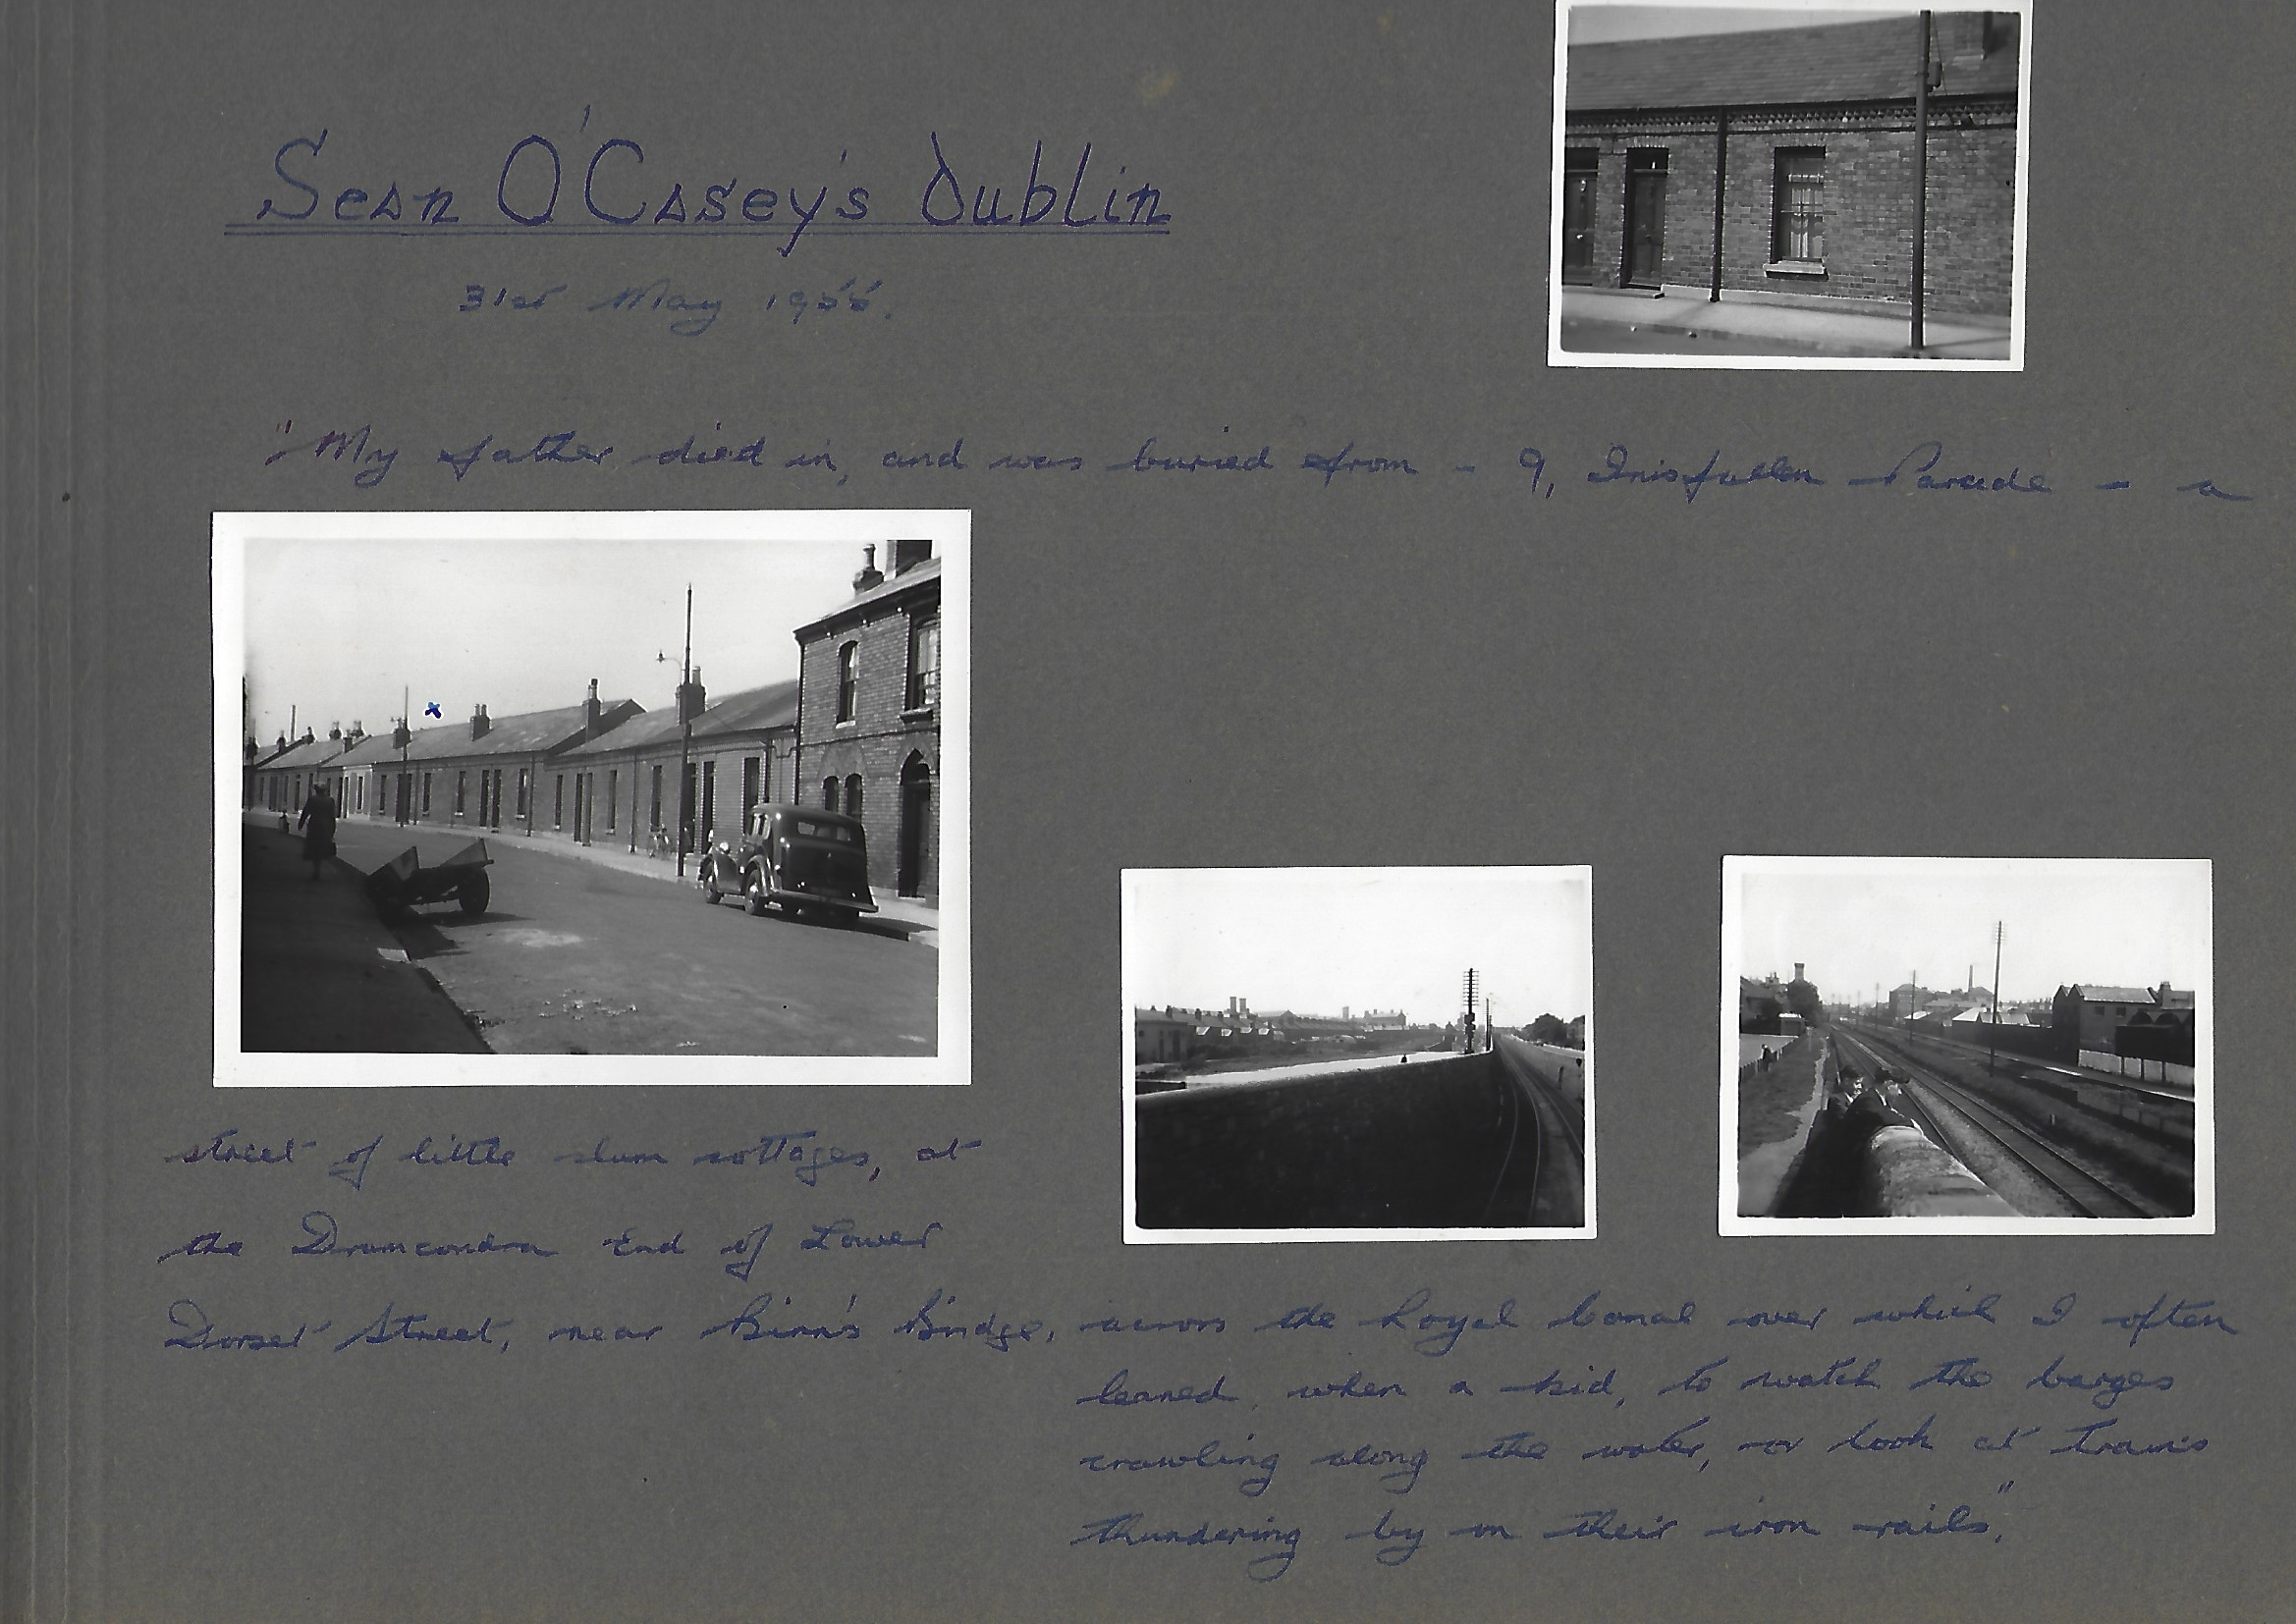 David Butcher's photo album of Dublin 1956 p. 1